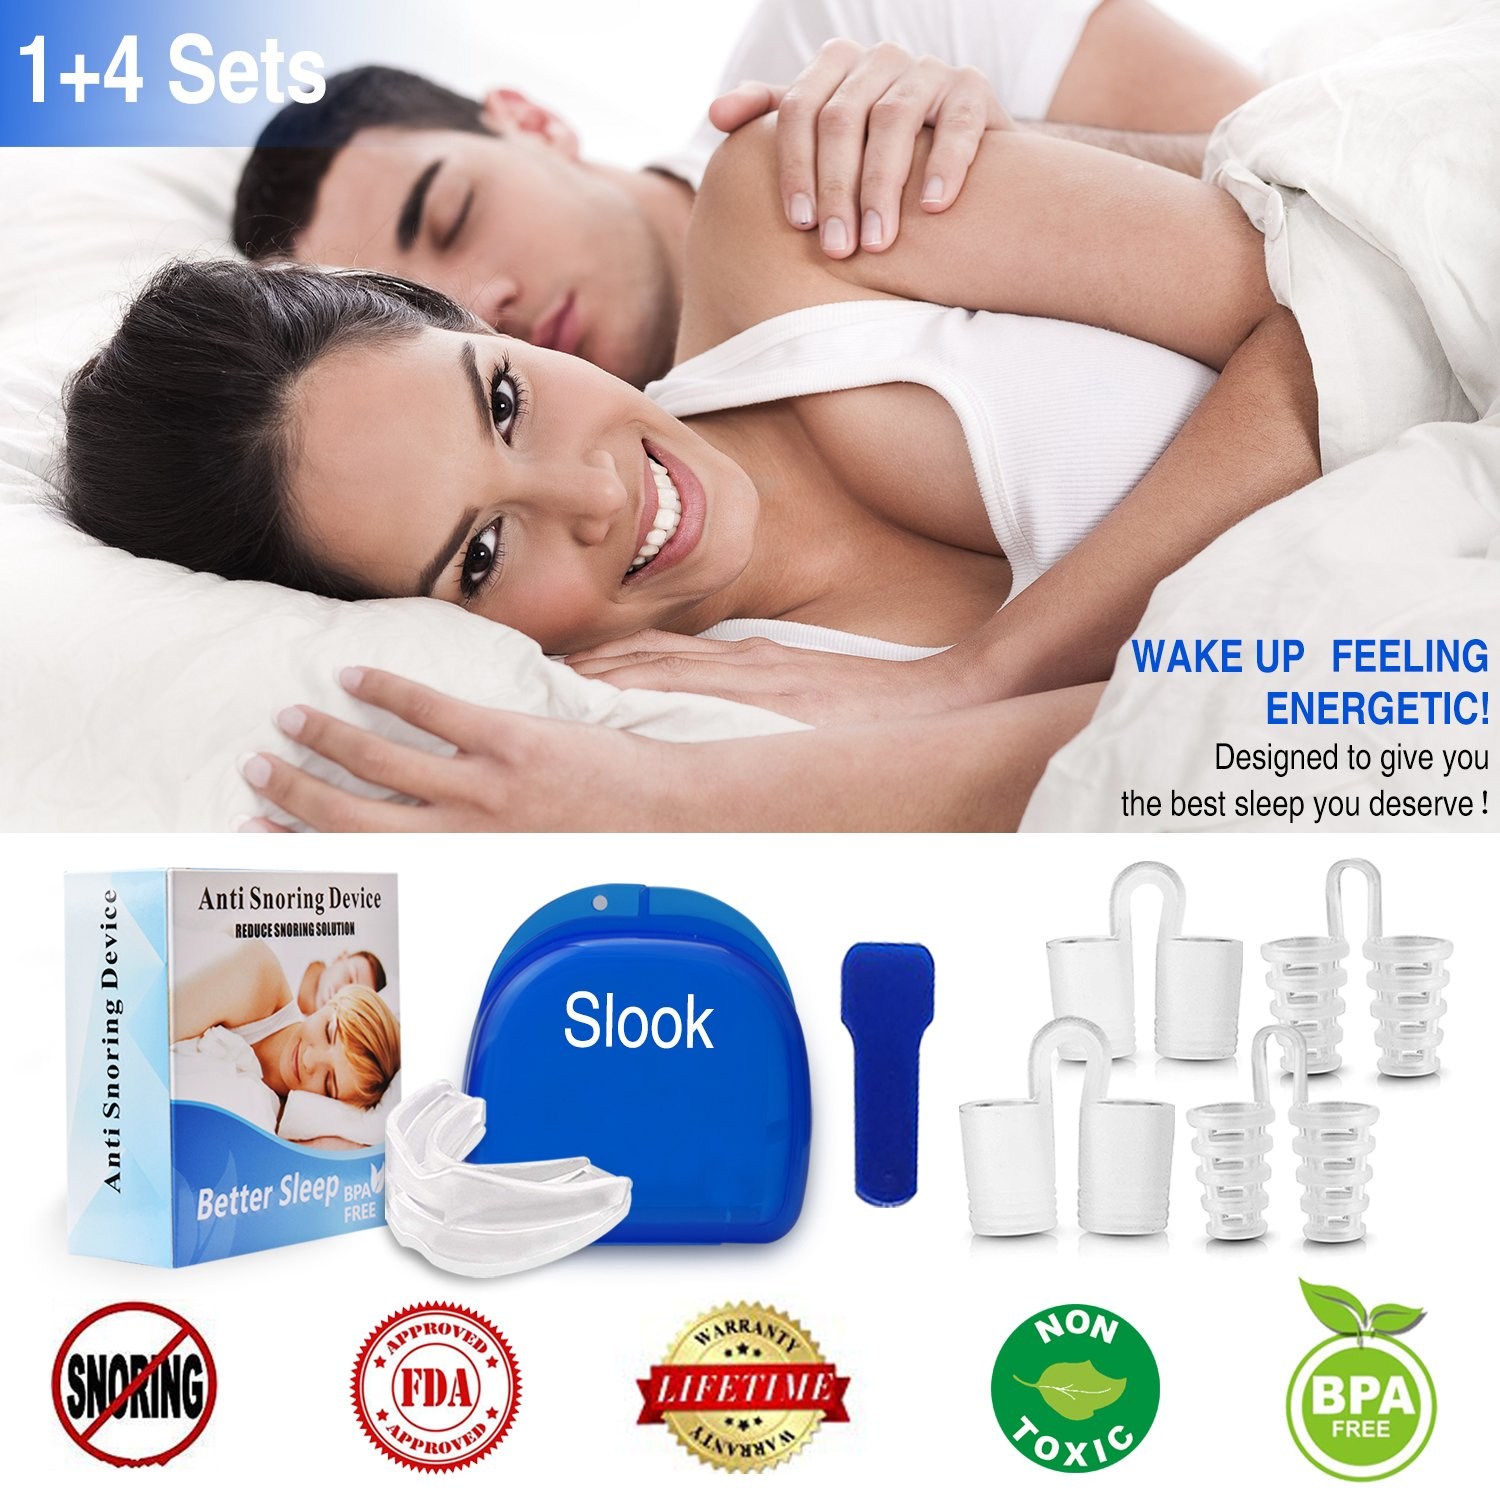 Snoring Solution Stop Snoring Mouthpiece, 4 Set Anti Snoring Nose Vents Nasal Dilators Nose Cones Snore Reduction Snore Stopper Nose Plugs Sleep AIDS Stop Snoring Devices for Men and Women